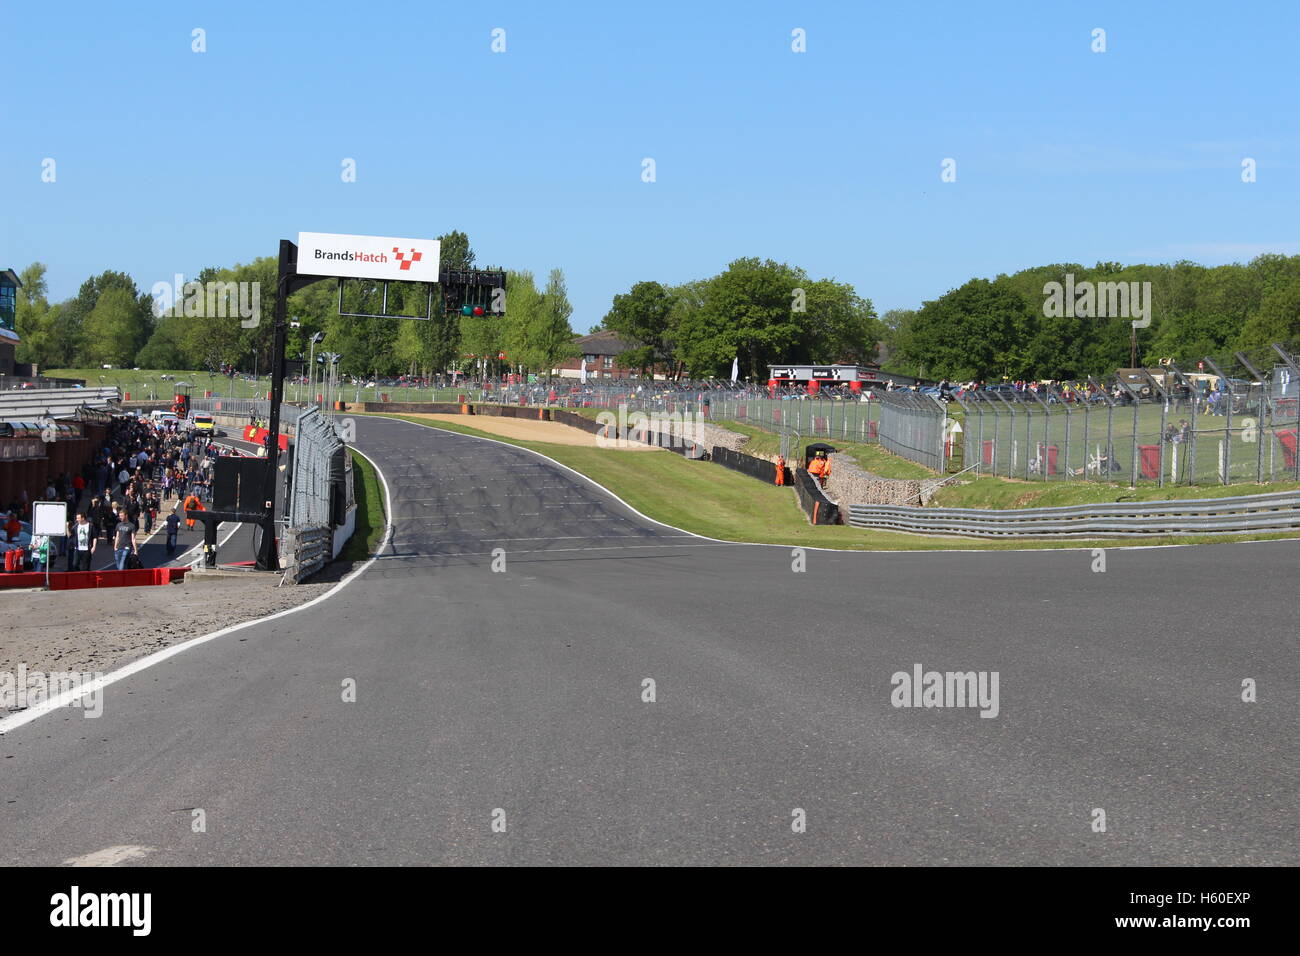 Brands Hatch looking back down Brabham straight - Stock Image